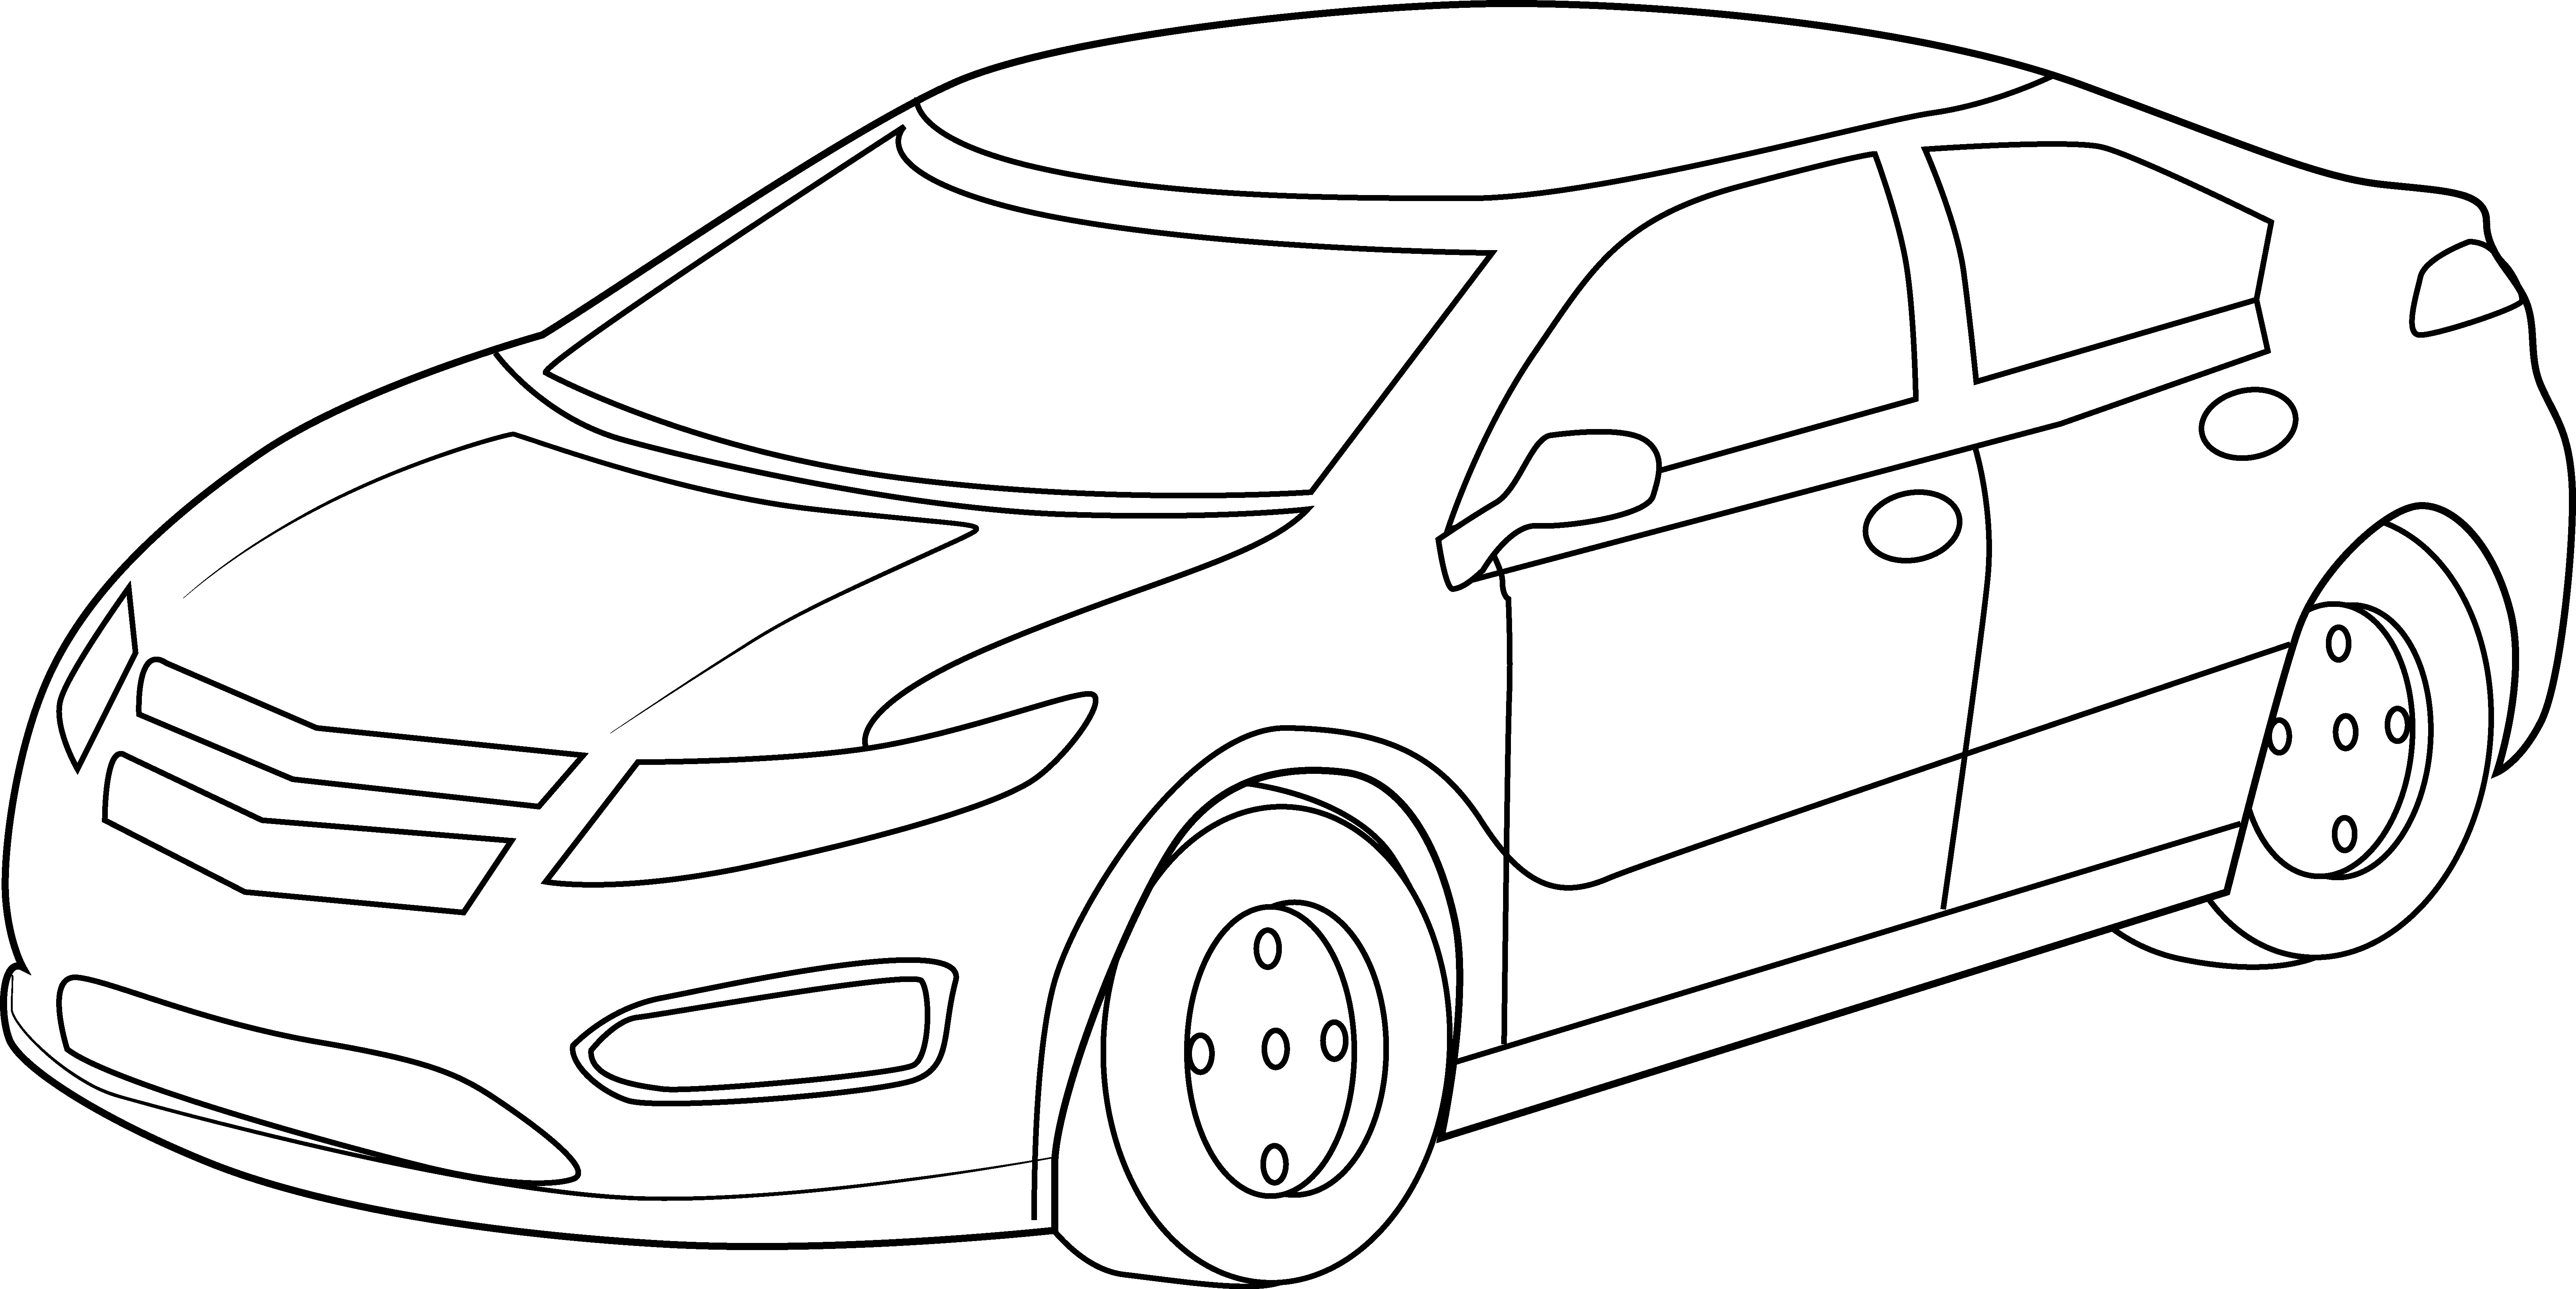 Race Car Drawing Step By Step At Getdrawings